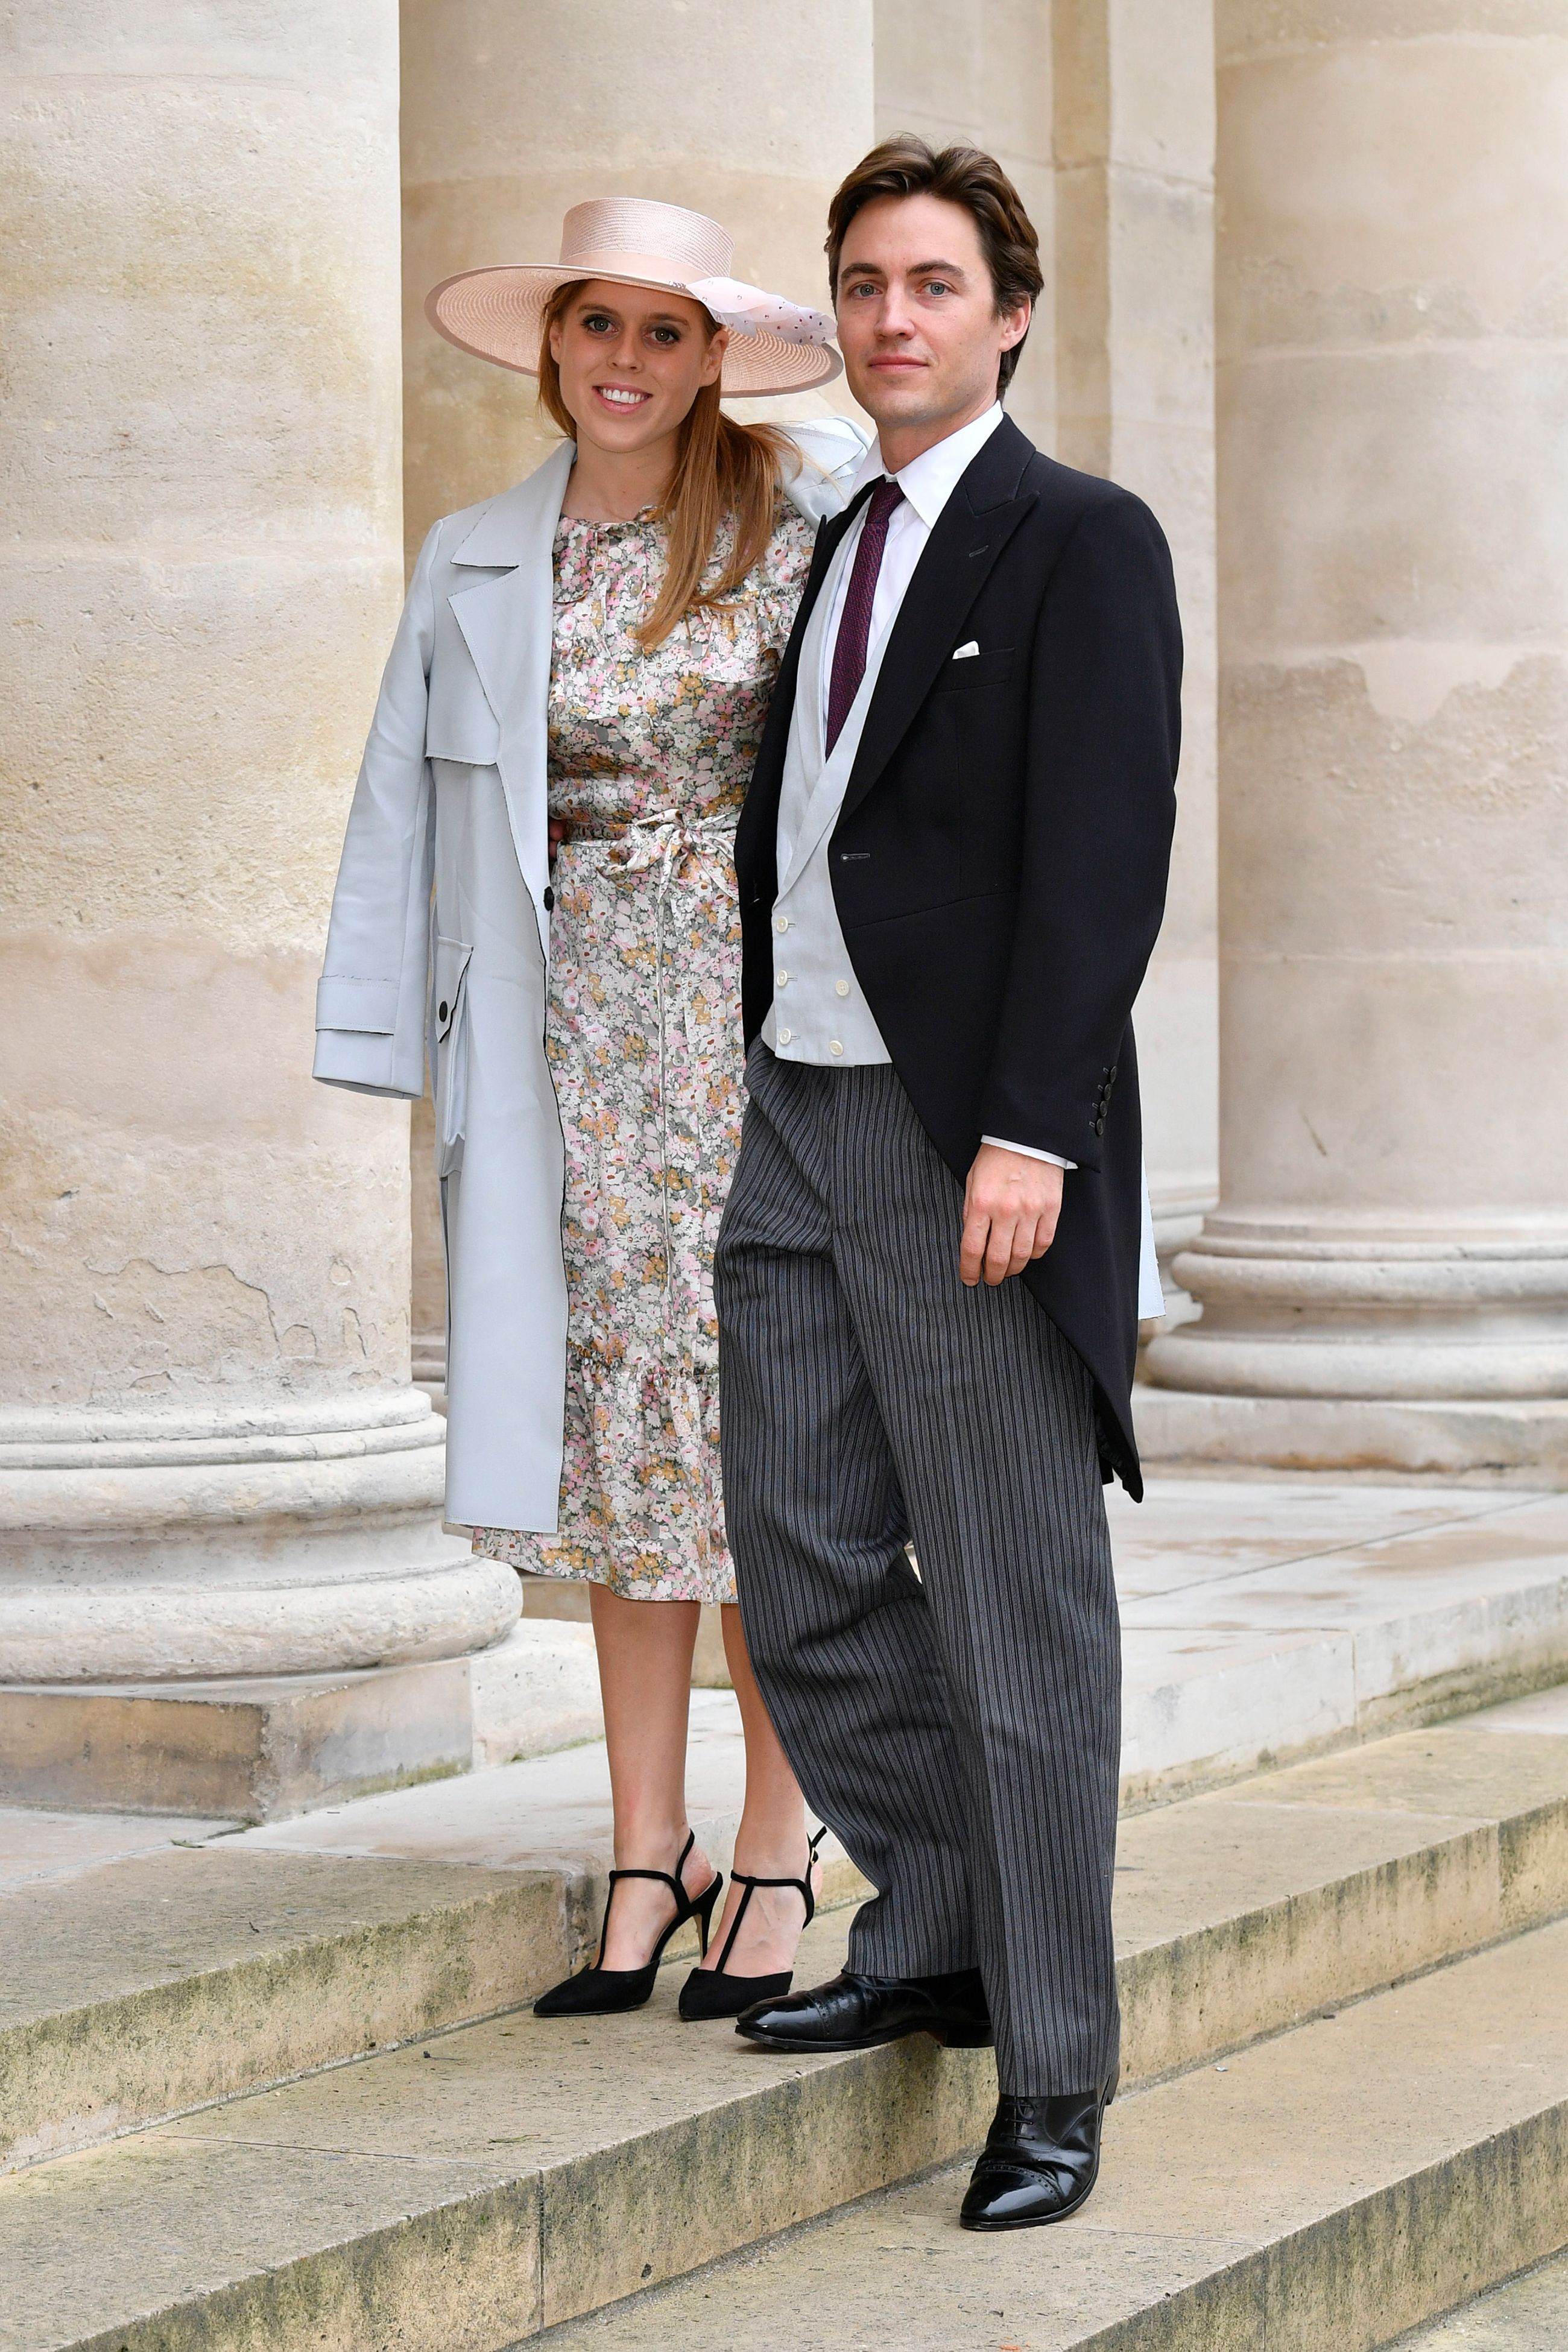 Princess Beatrice and Fiancé Edoardo Mapelli Mozzi Just Attended a Royal Wedding in Paris